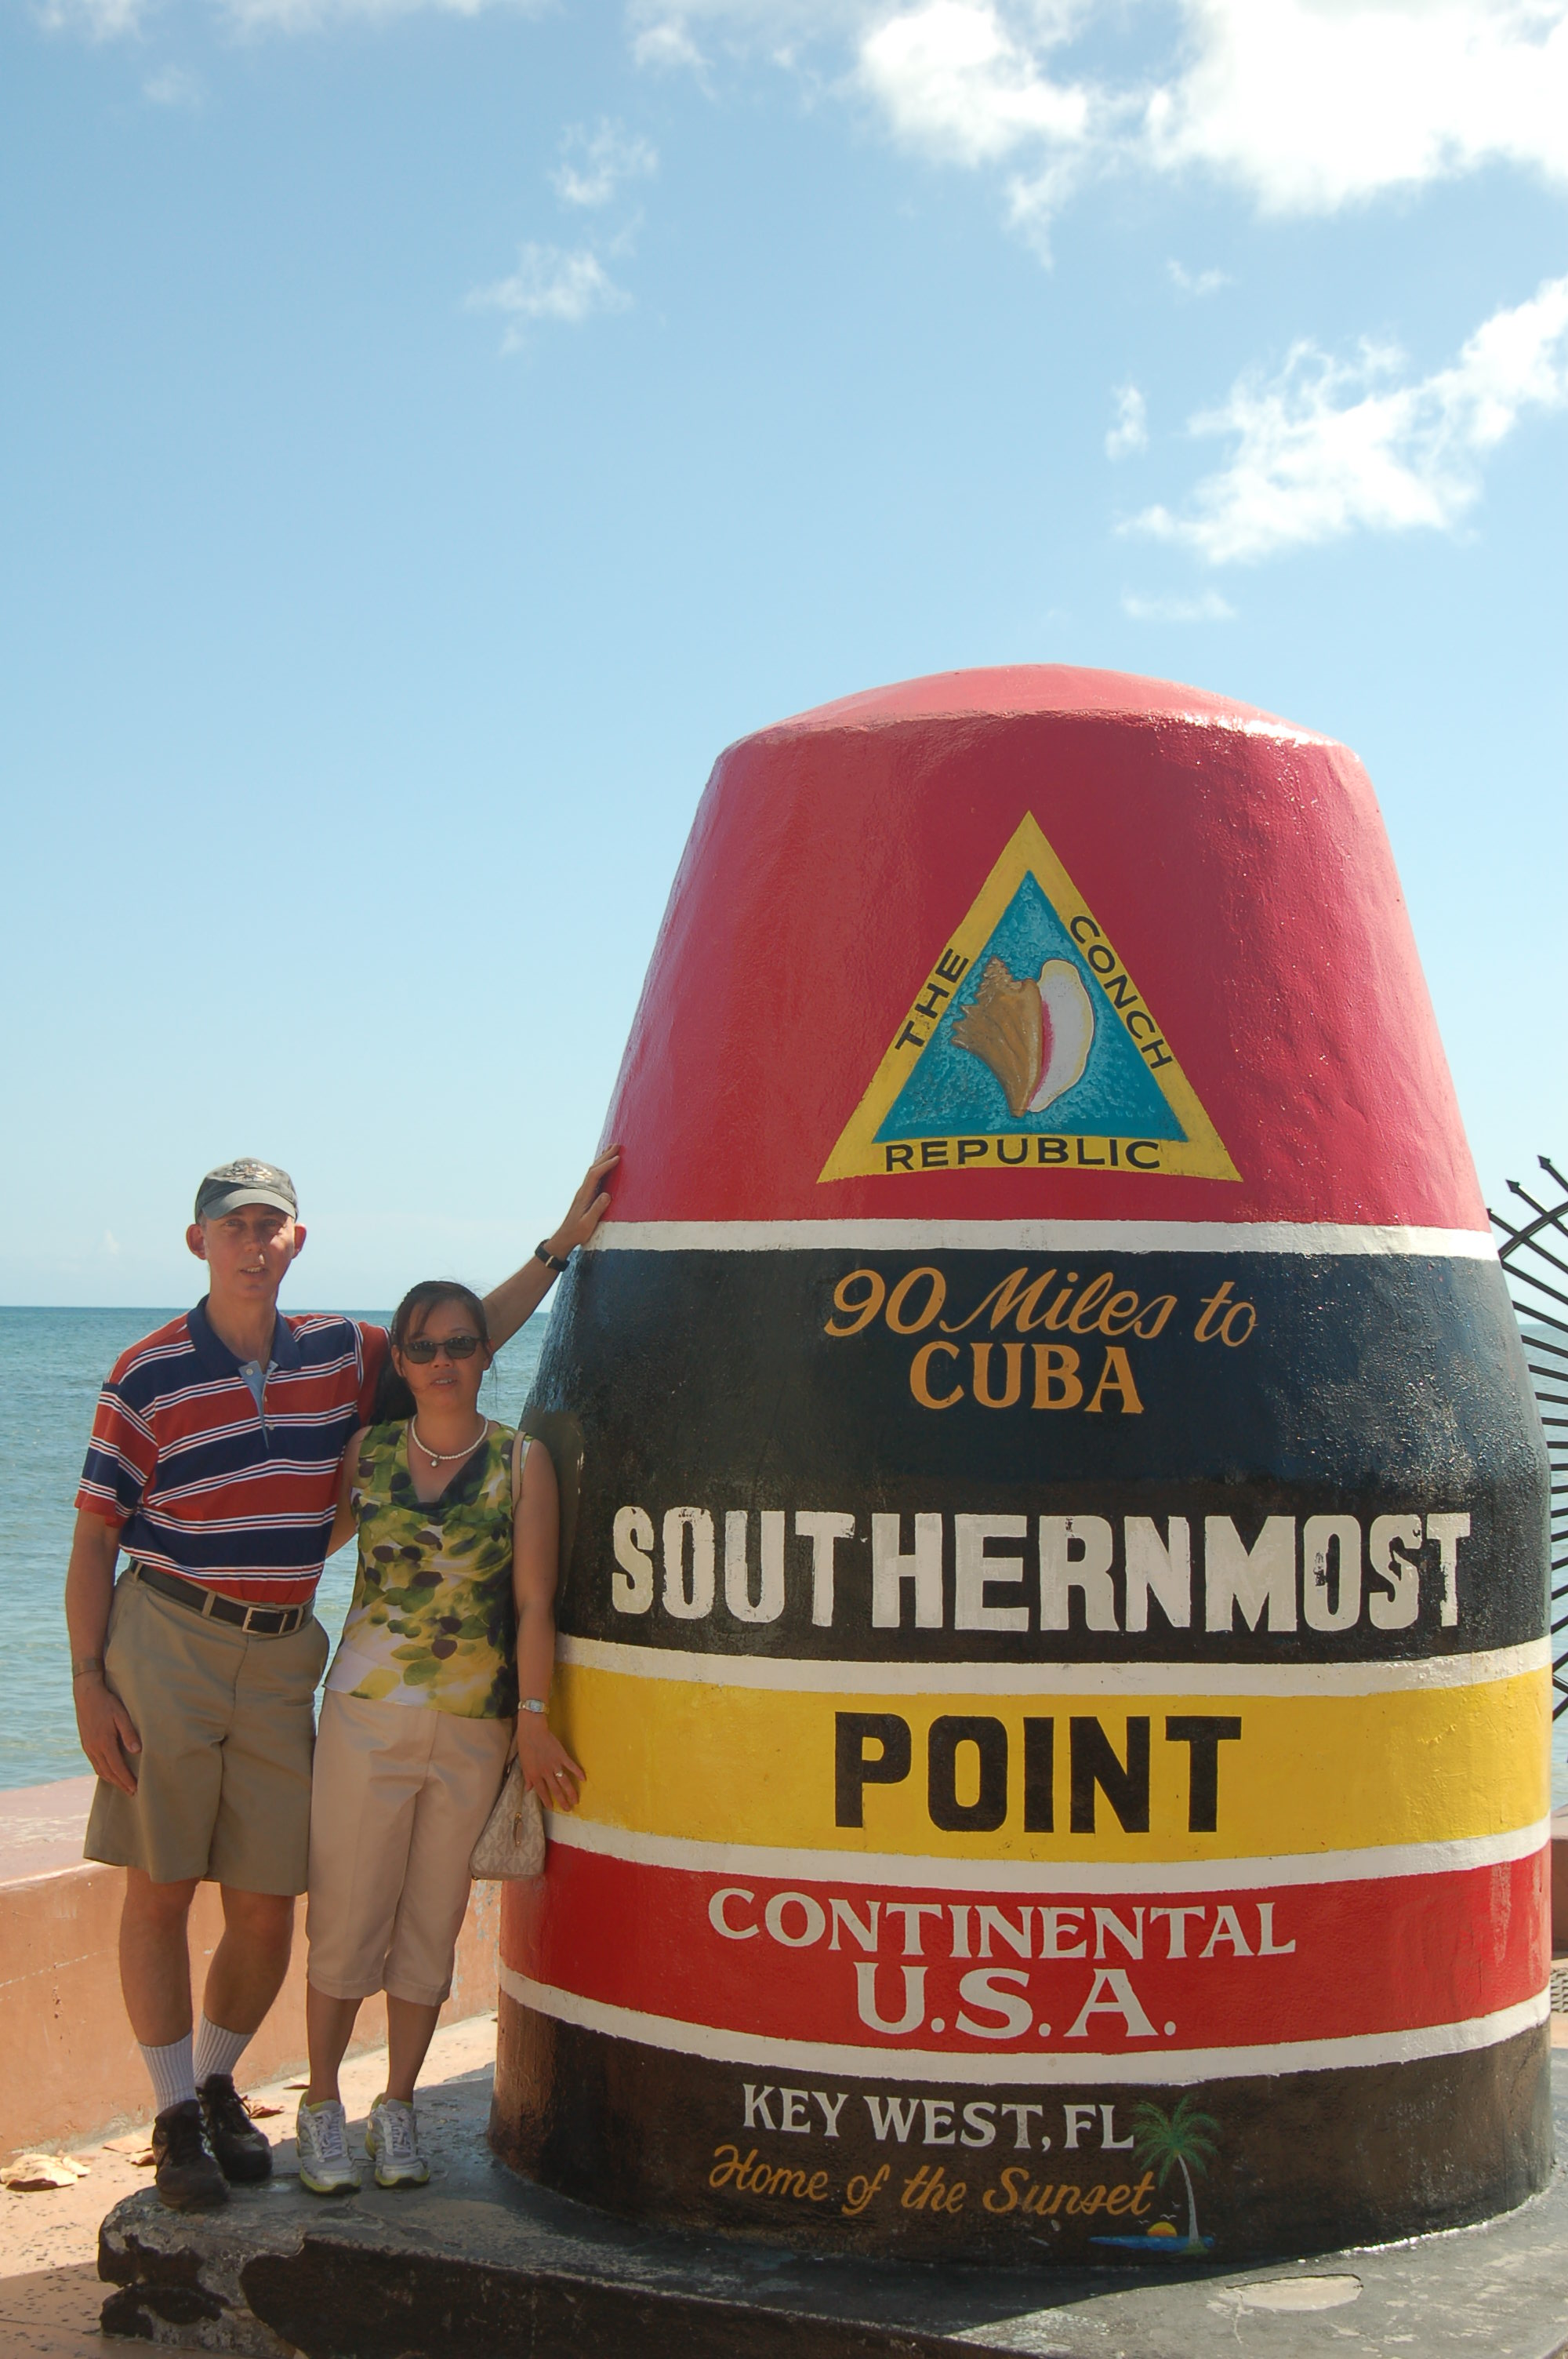 At The Southernmost Point of the US